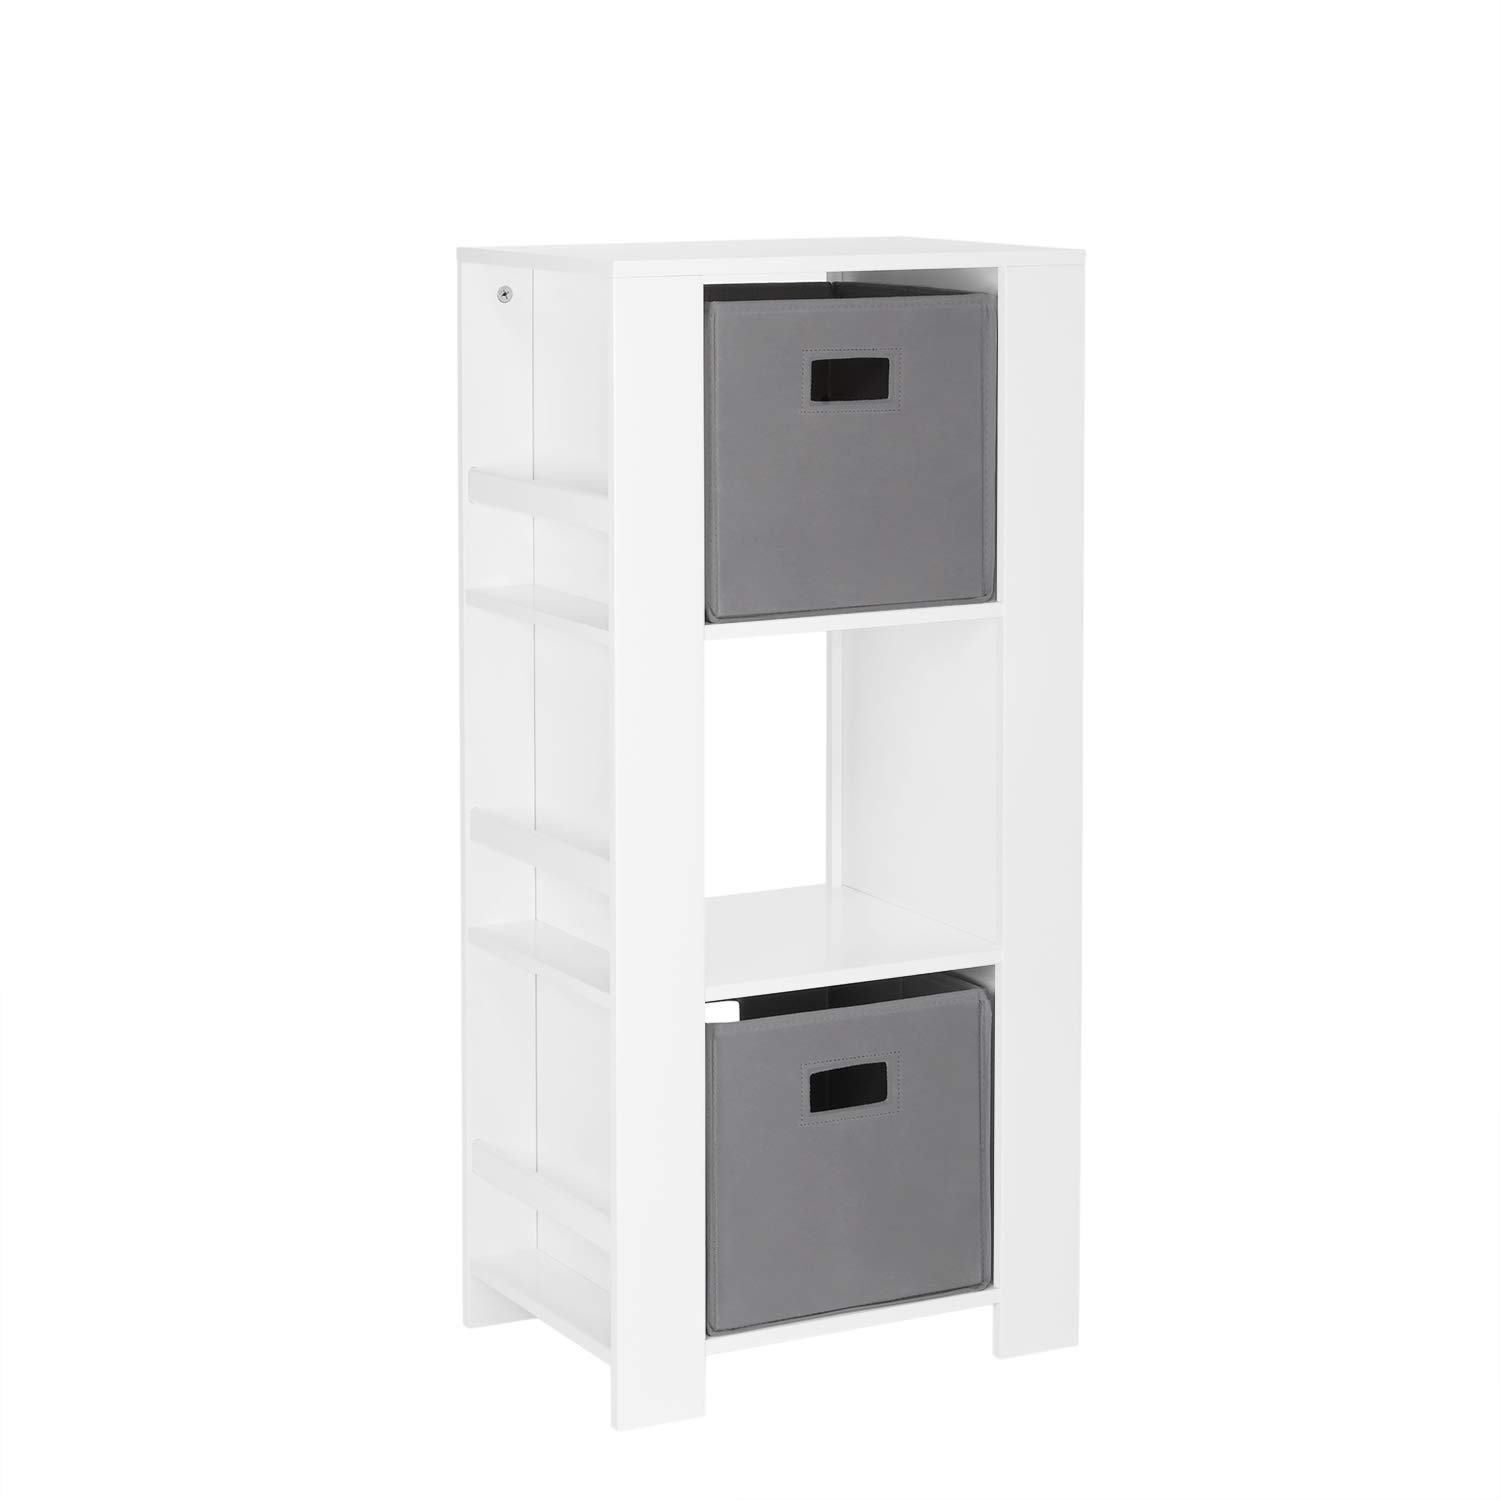 RiverRidge Home Book Nook Collection Kids Cubby Bookshelves with 2pc Storage Tower, White With Gray Bins